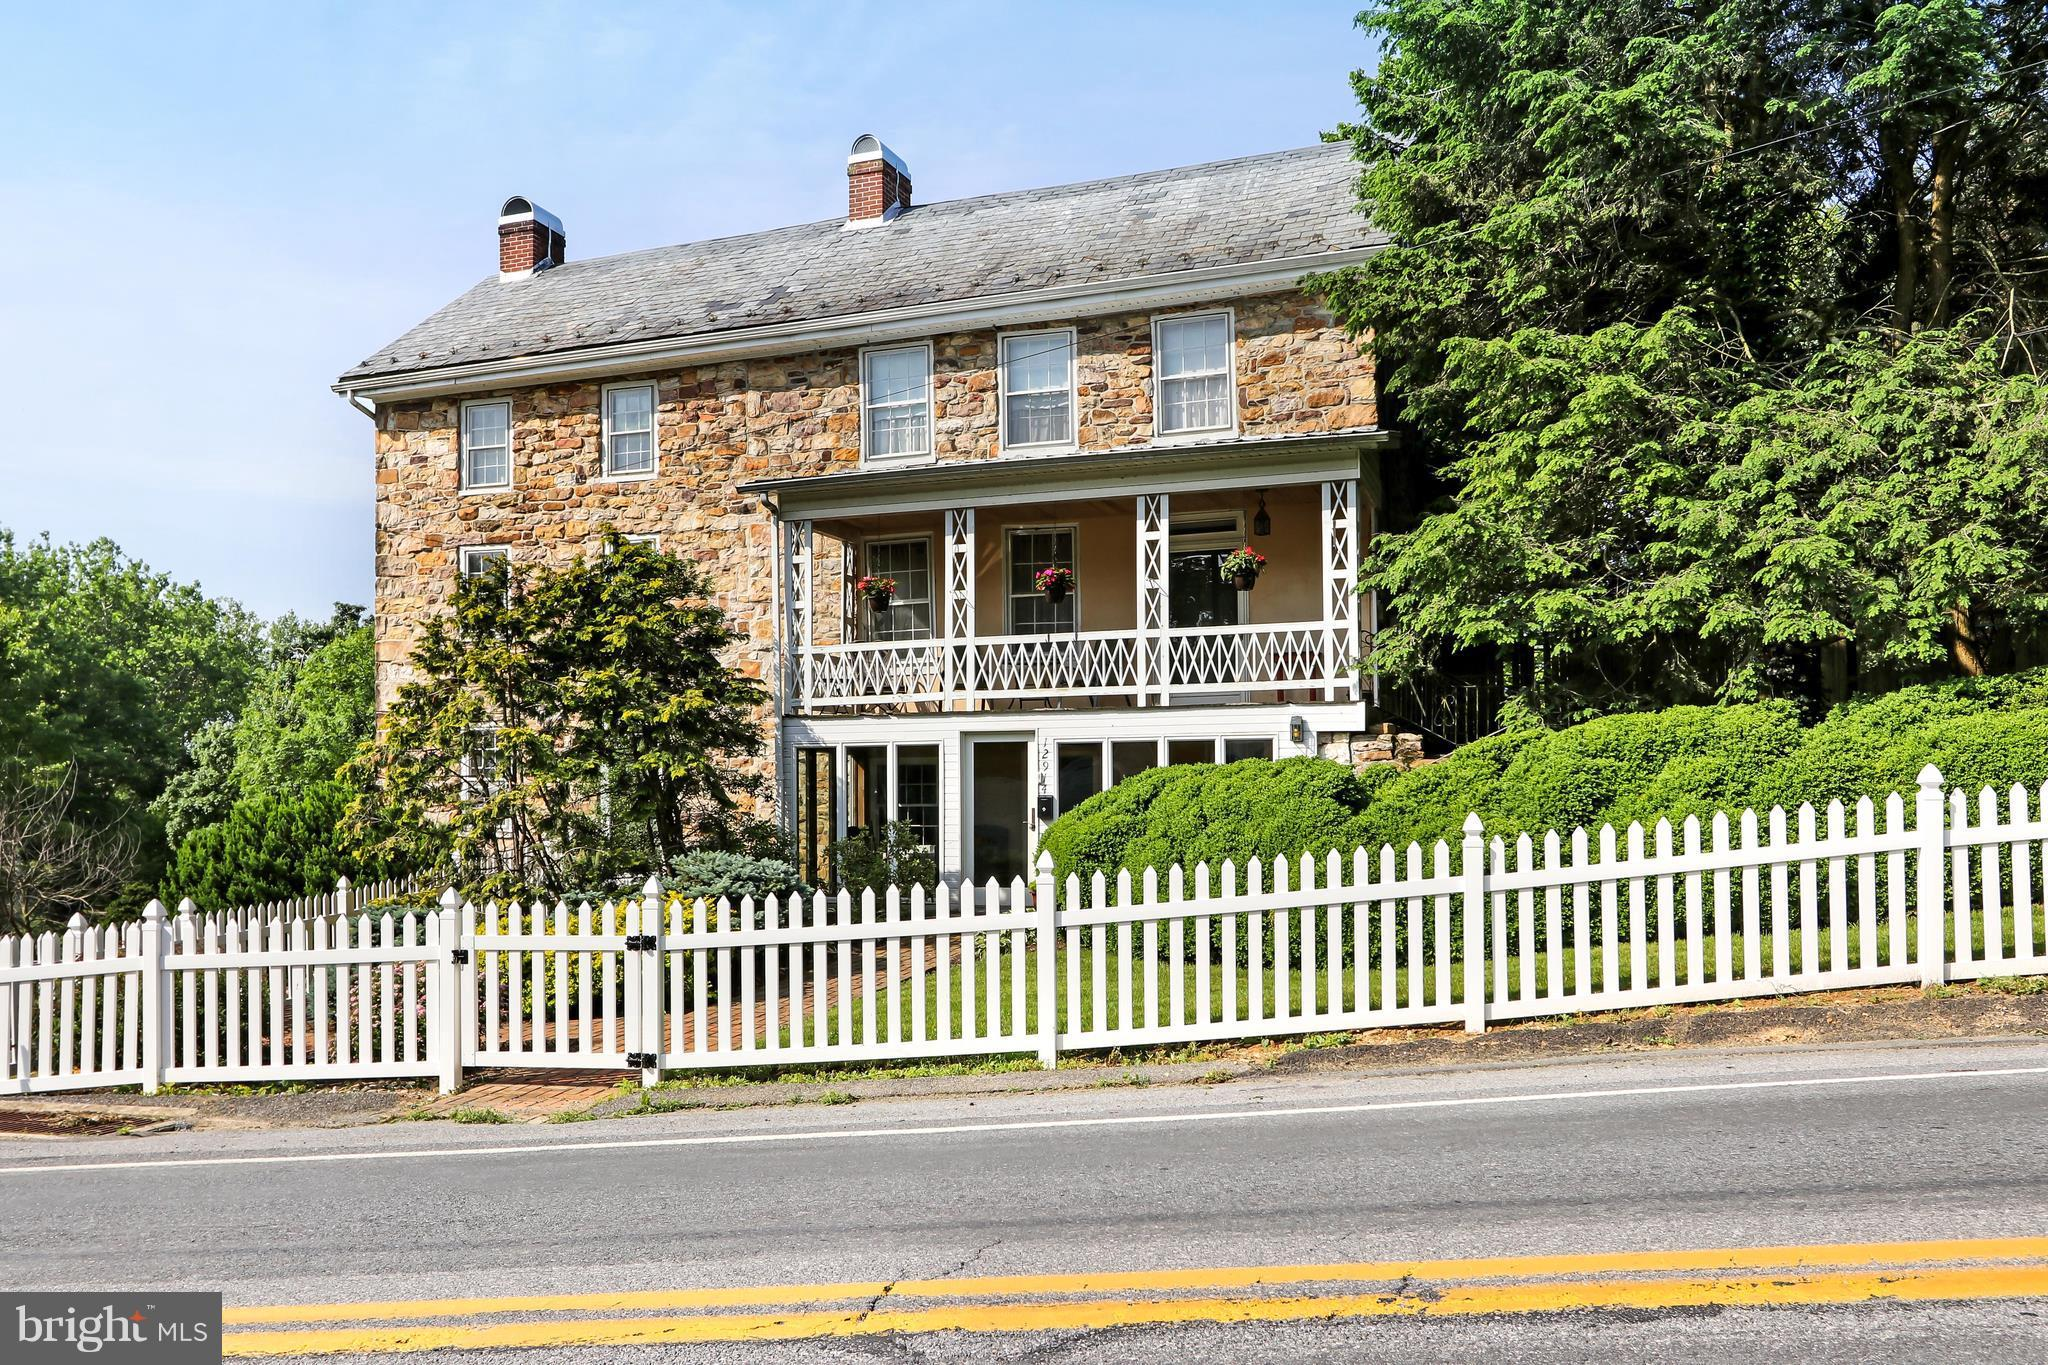 12914 MAIN STREET, FORT LOUDON, PA 17224